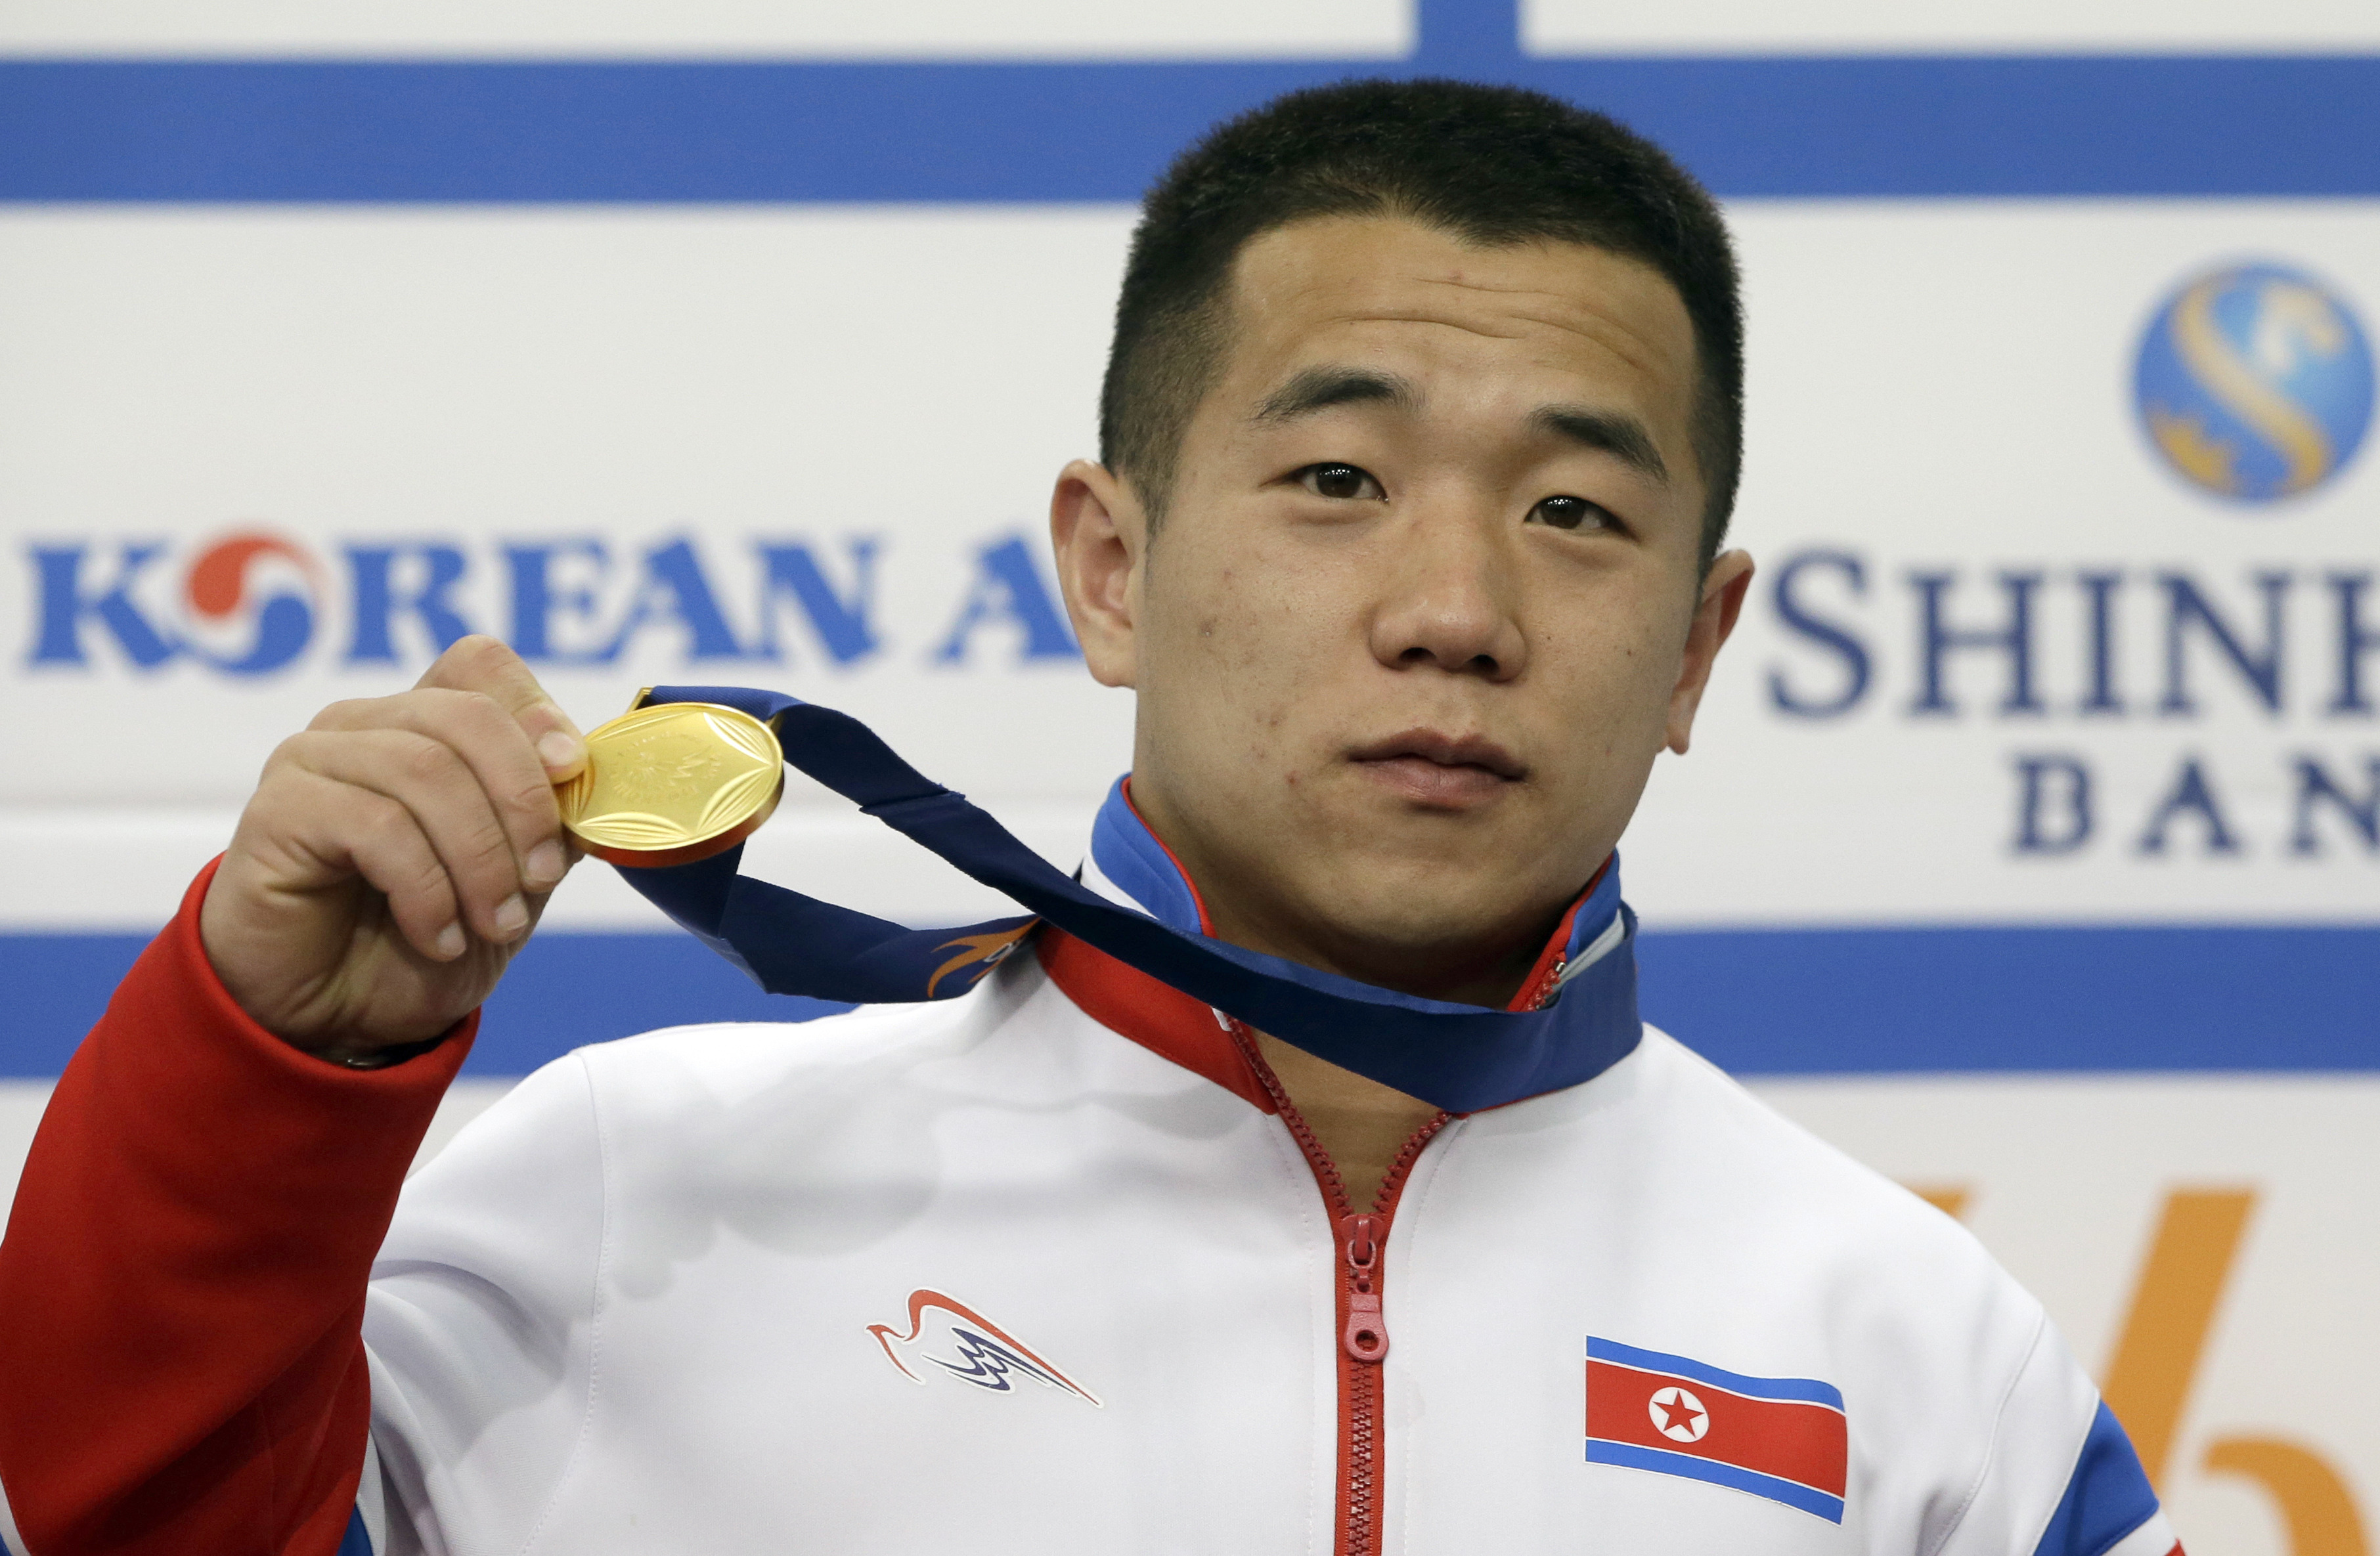 FILE - In this Sept. 23, 2014, file photo, North Korea's gold medalist of the men's 56kg weightlifting Om Yun Chol poses with his gold medal during a press conference at the 17th Asian Games in Incheon, South Korea. Om Yun-chol is the front-runner to win